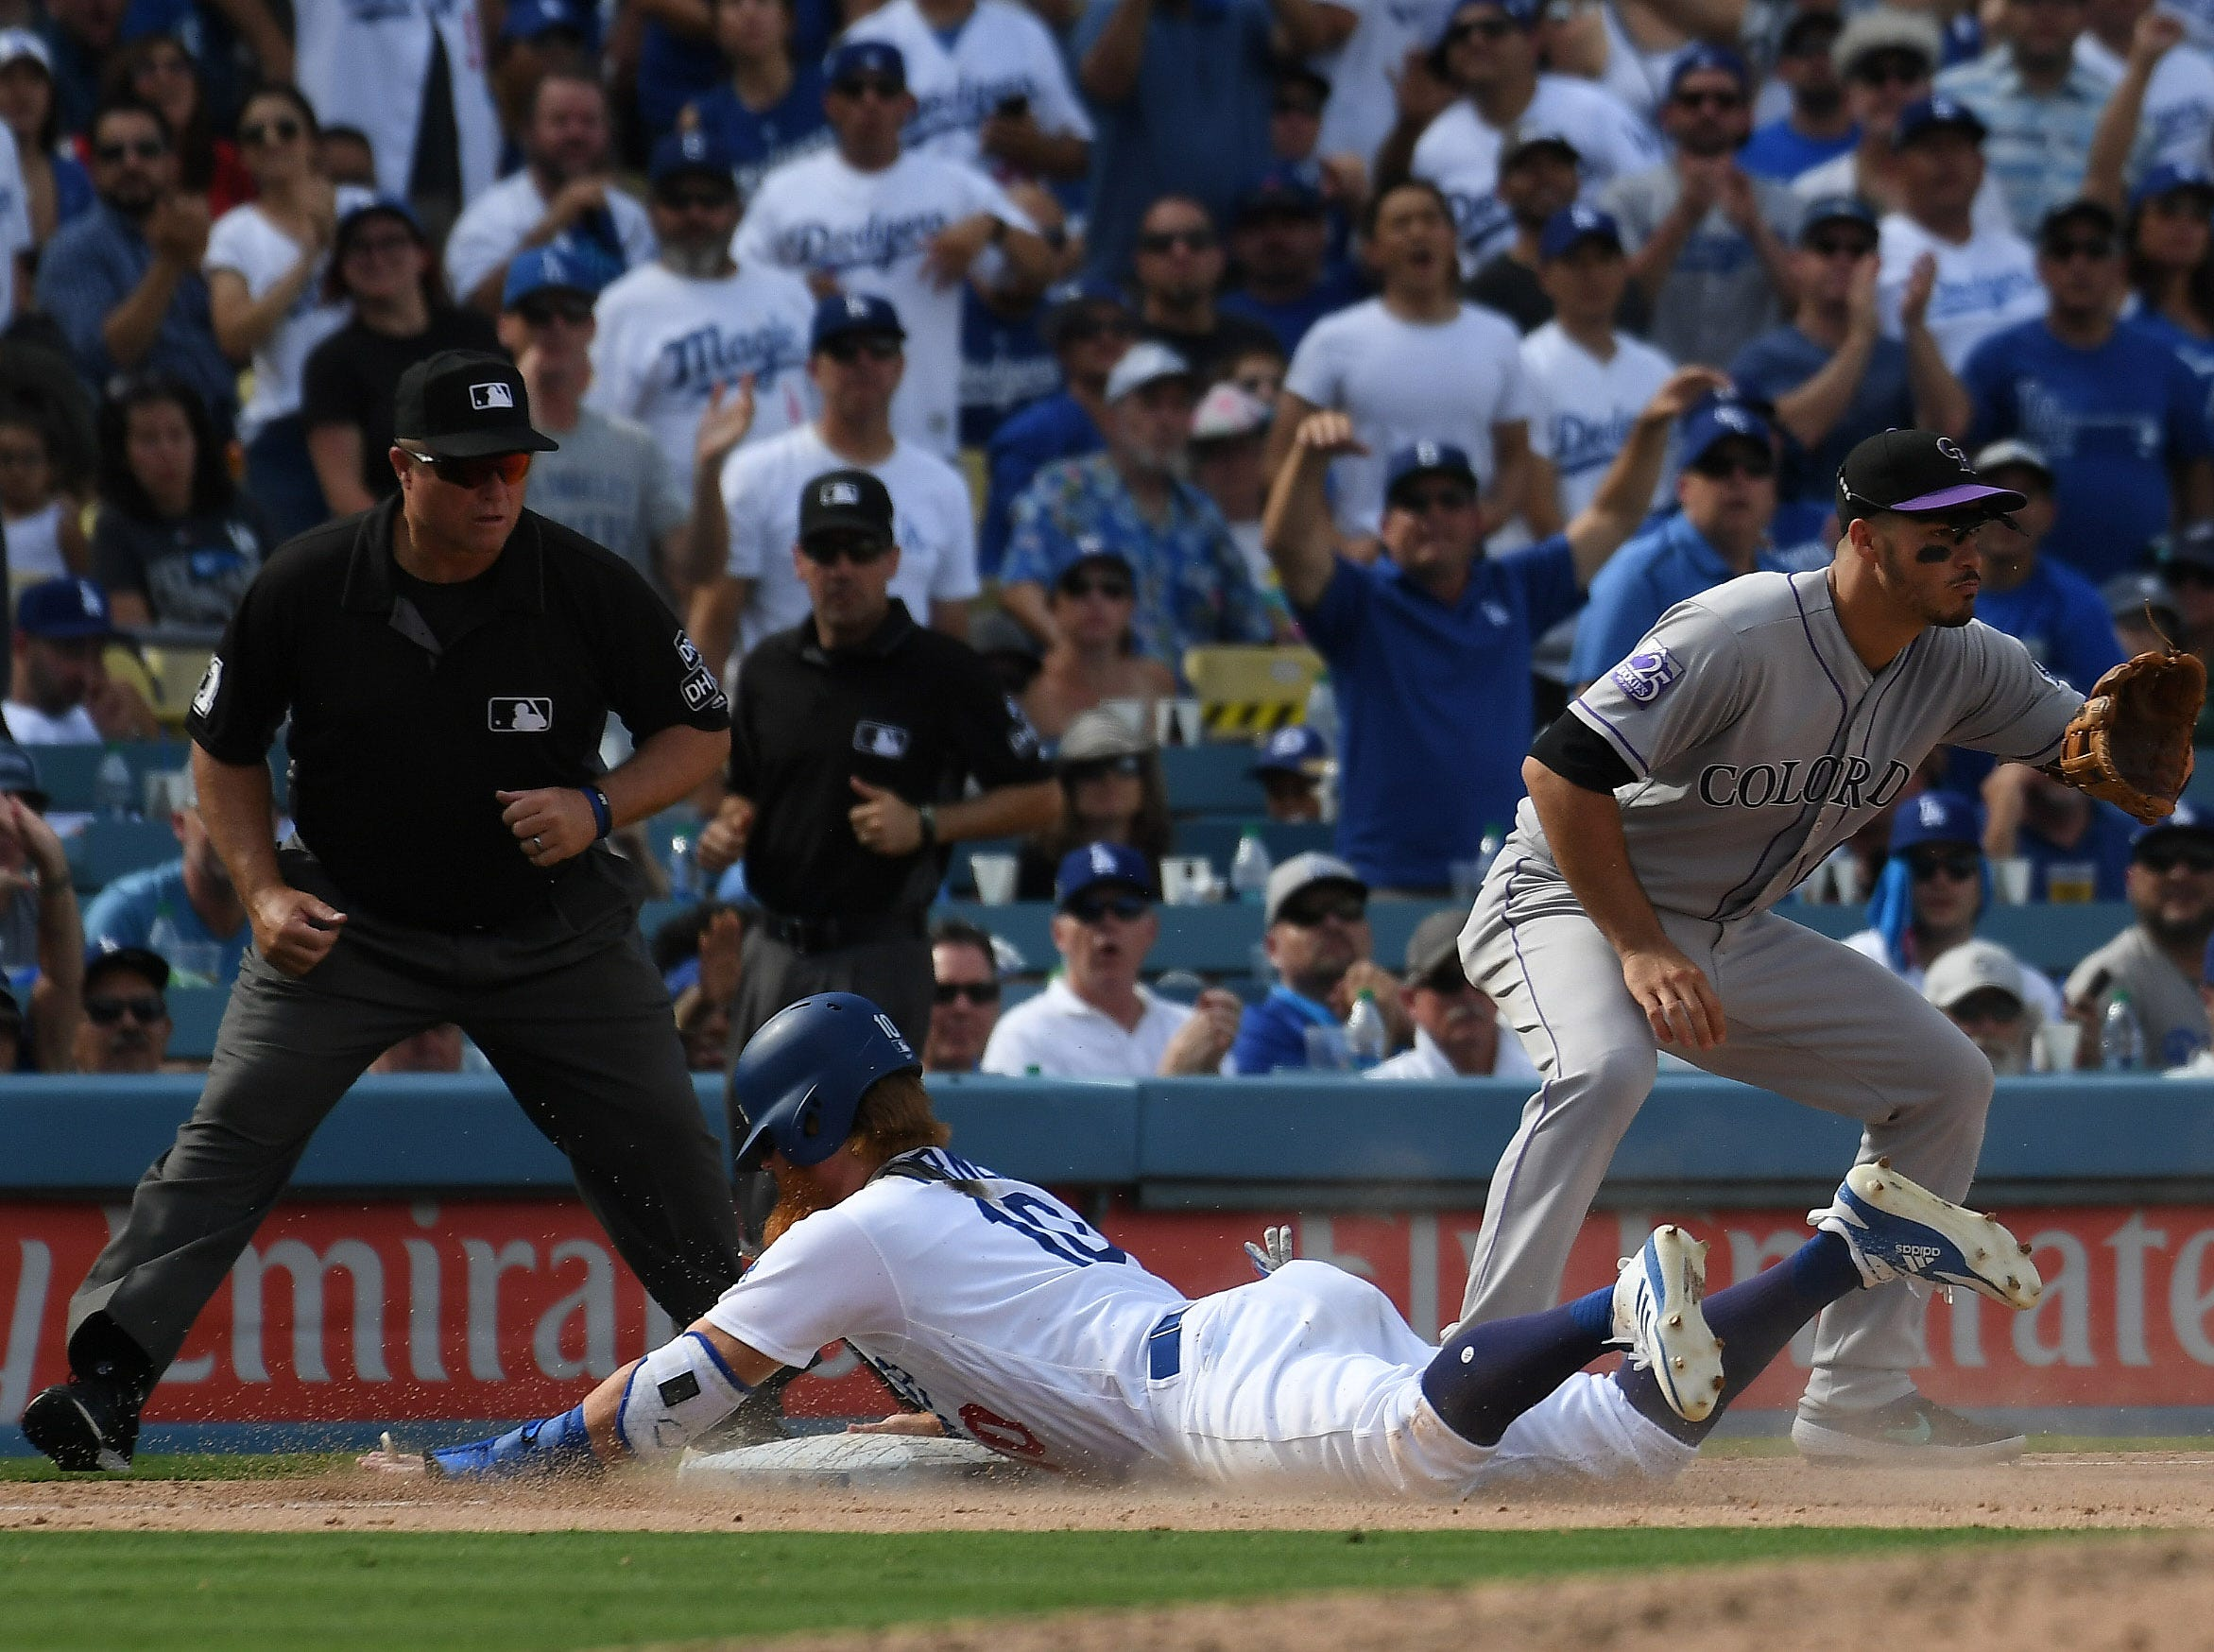 Dodgers third baseman Justin Turner slides safely into third base in the seventh inning.